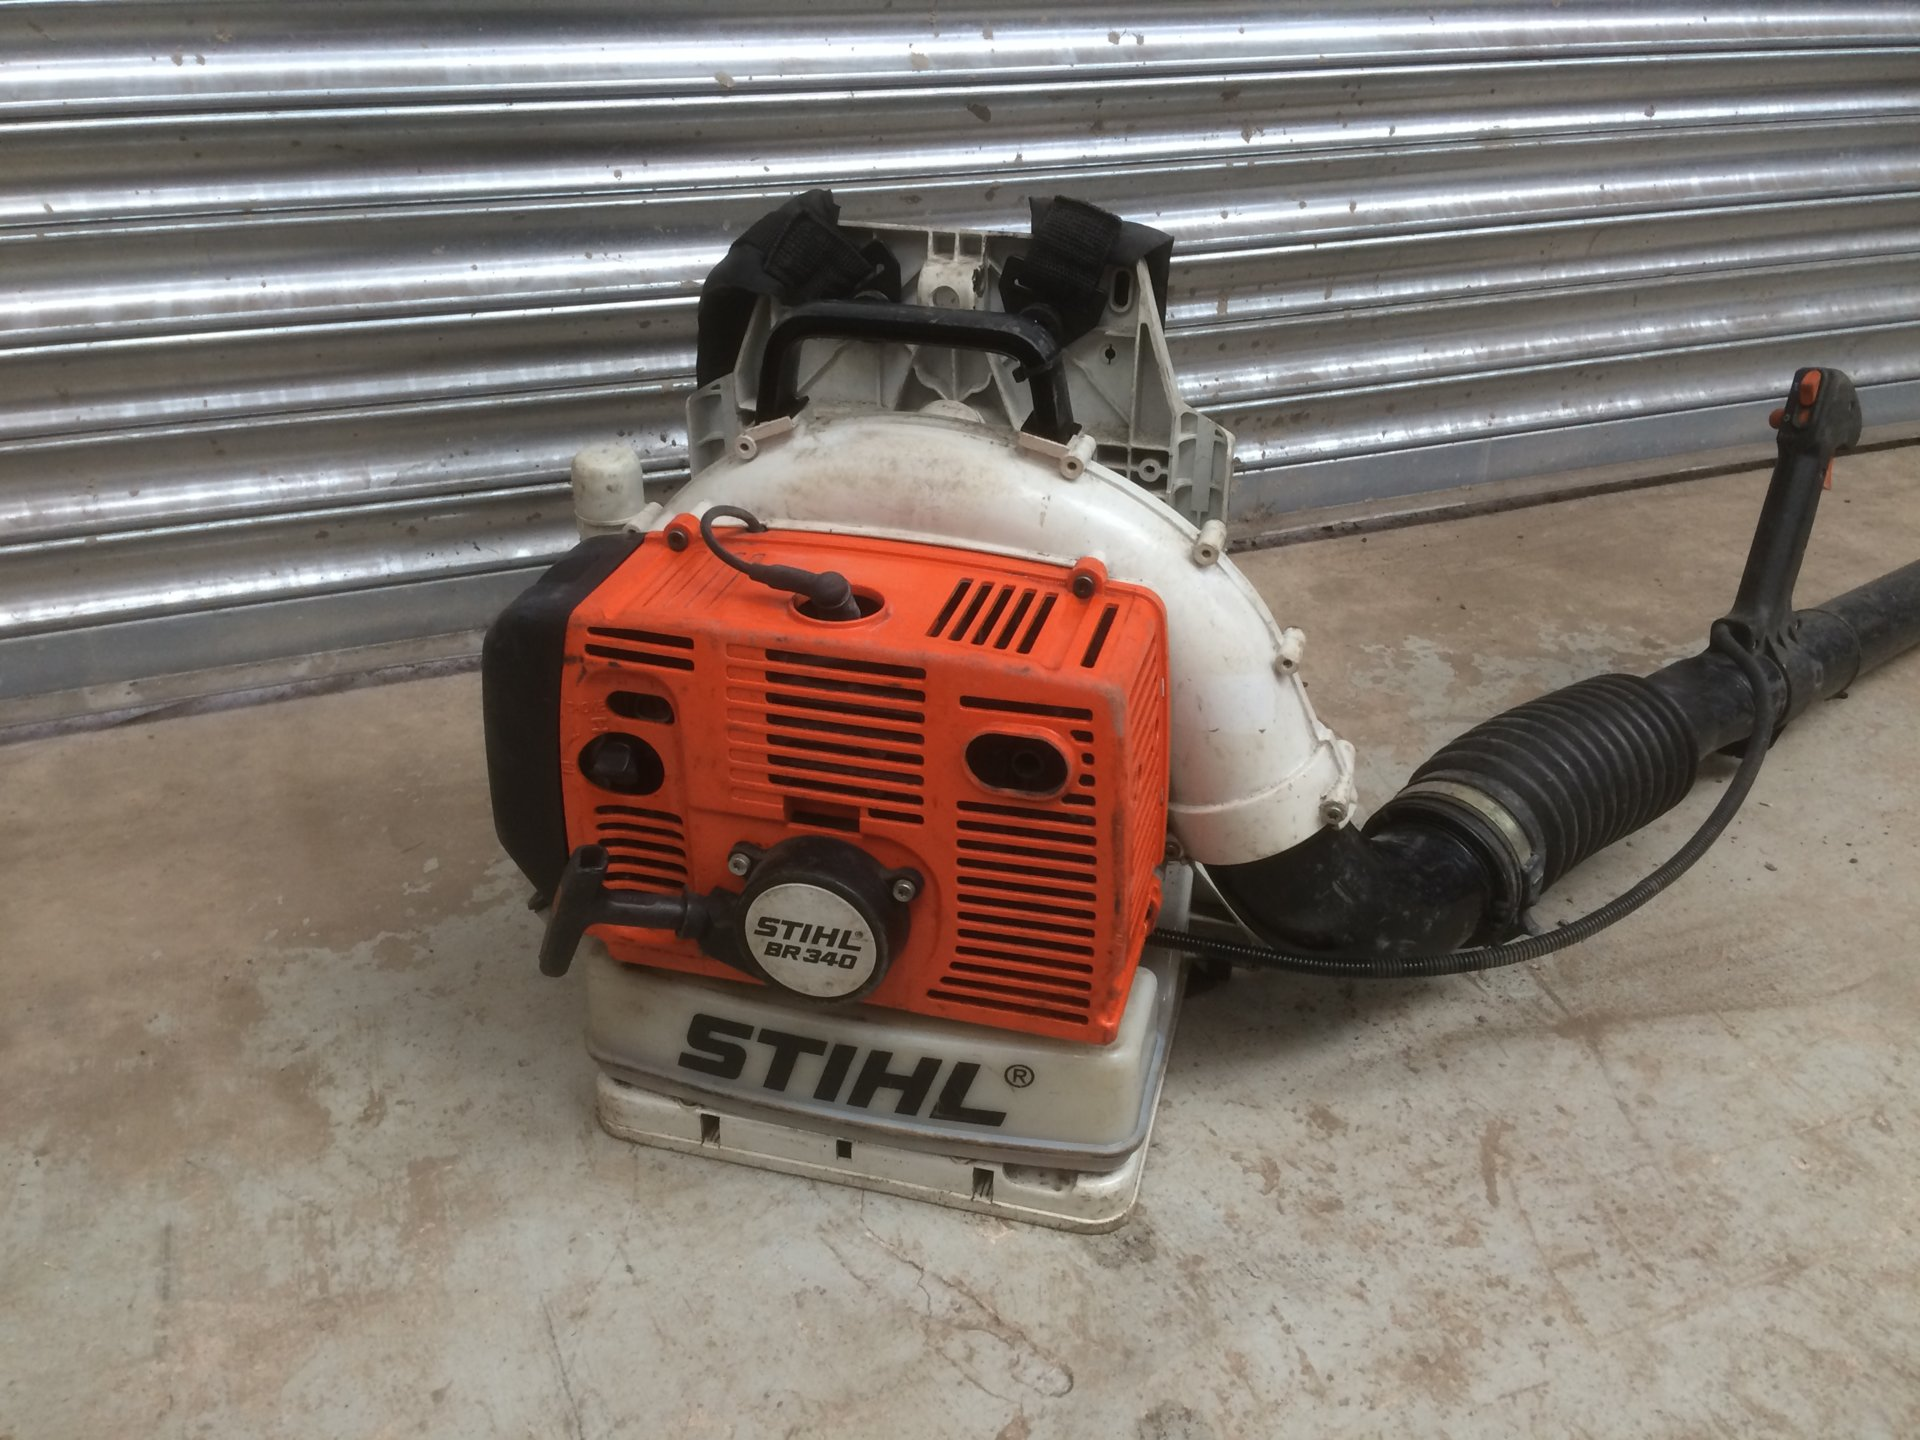 Stihl BR340 backpack blower | The Farming Forum